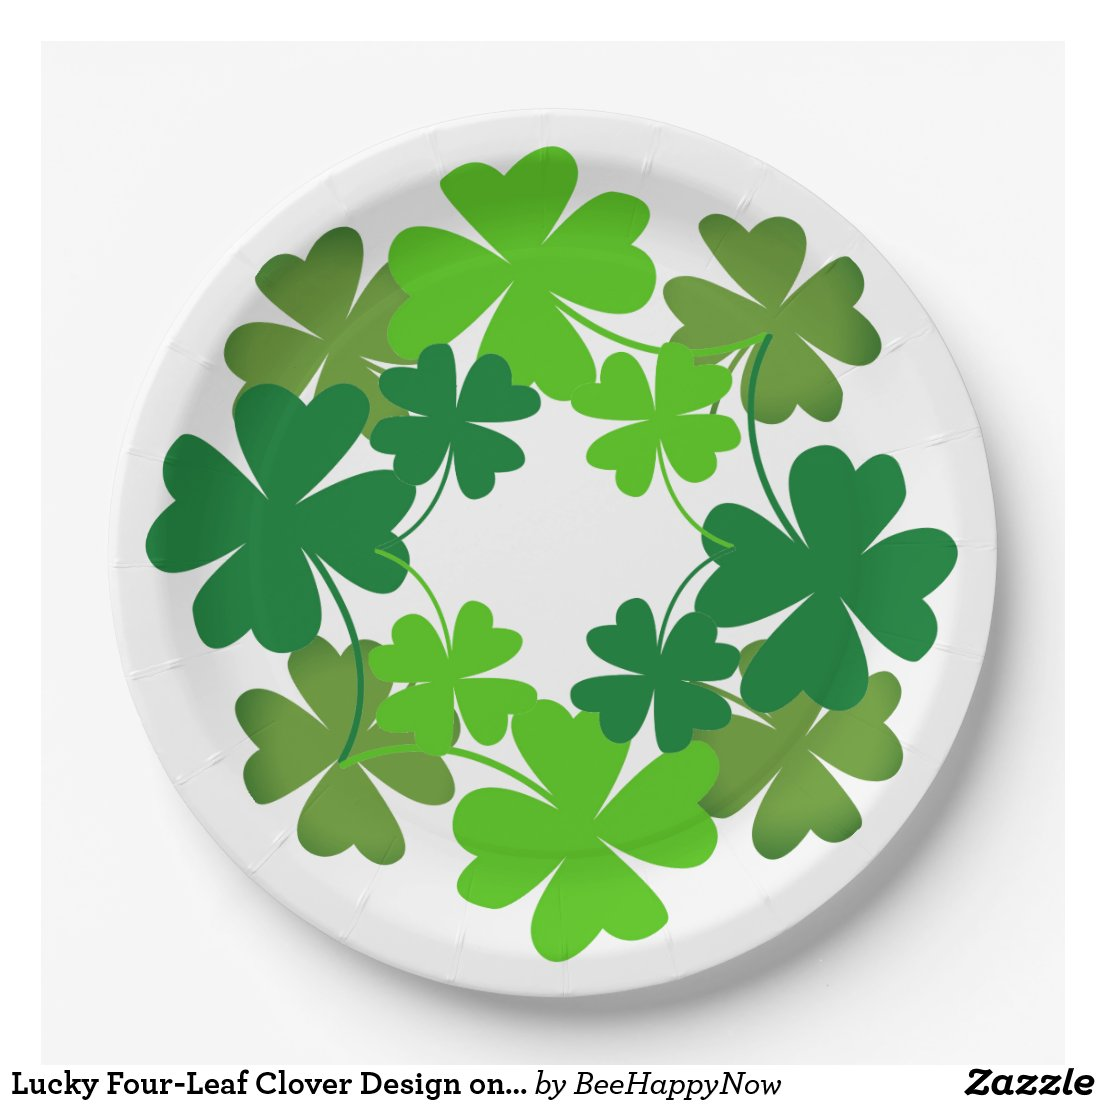 Lucky Four-Leaf Clover Design on Paper Plates